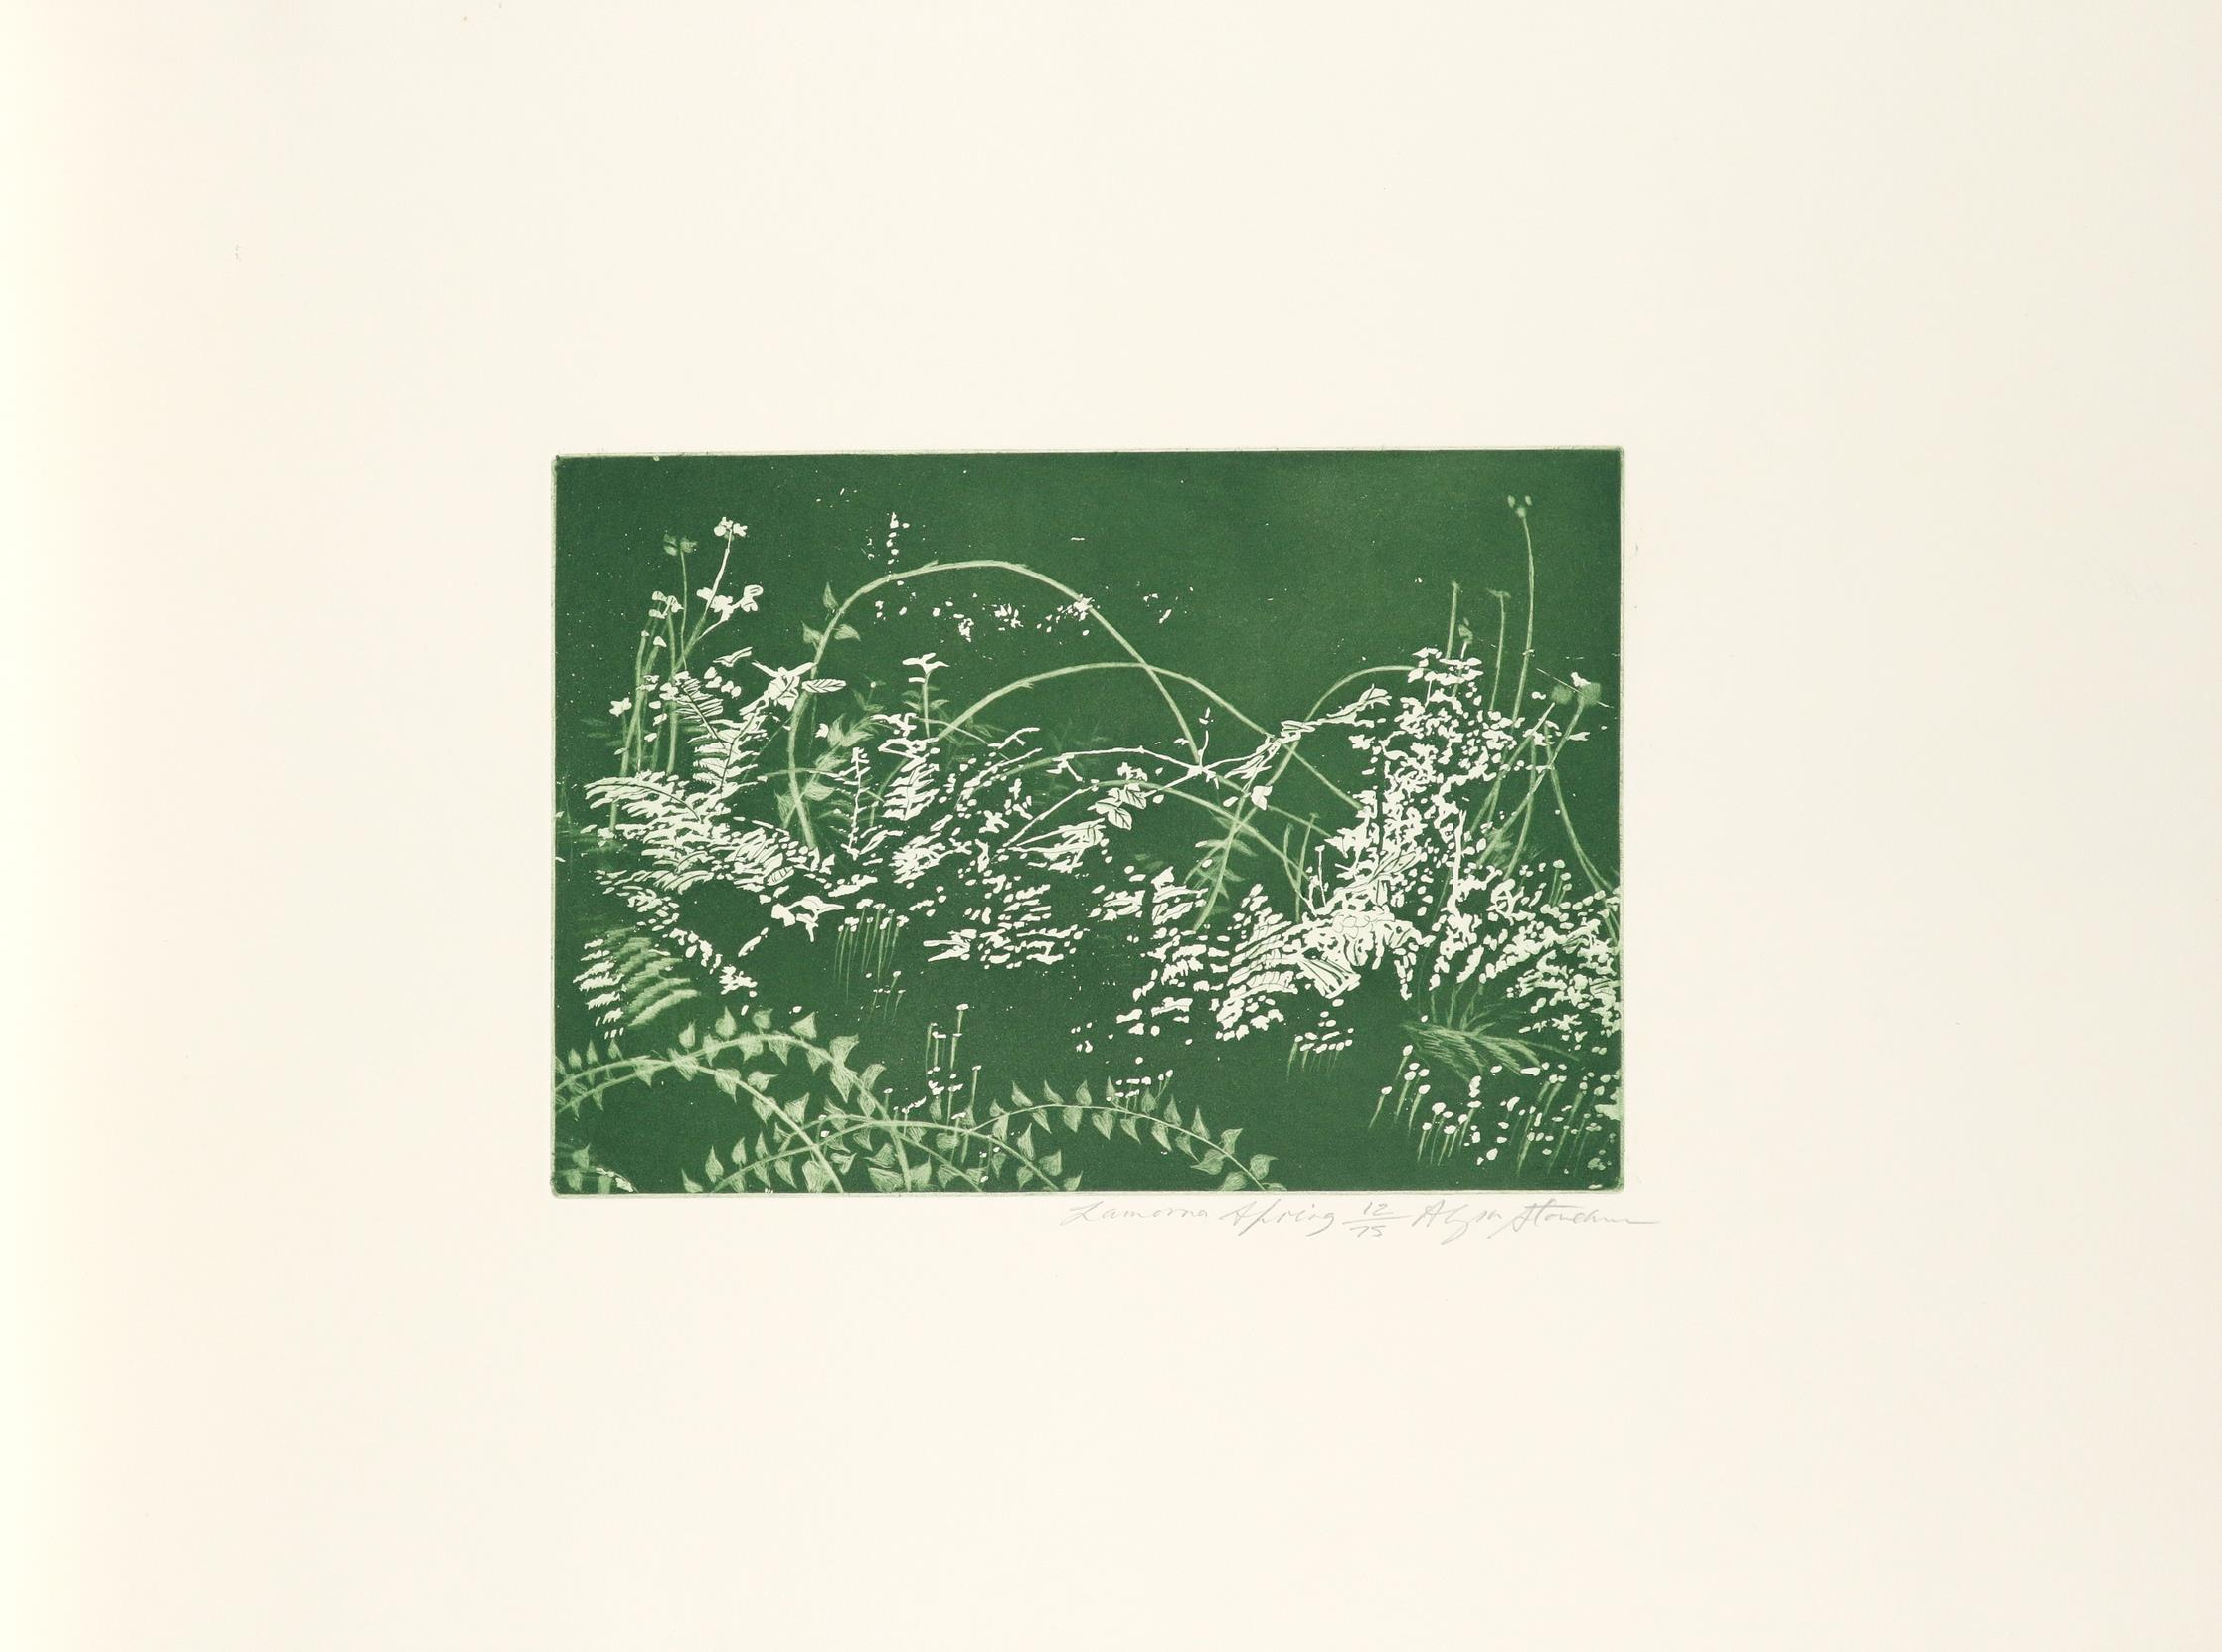 ‡Penwith Society of Arts Penwith Print Room Portfolio: A Spring Collection 10 prints plus title - Image 27 of 30